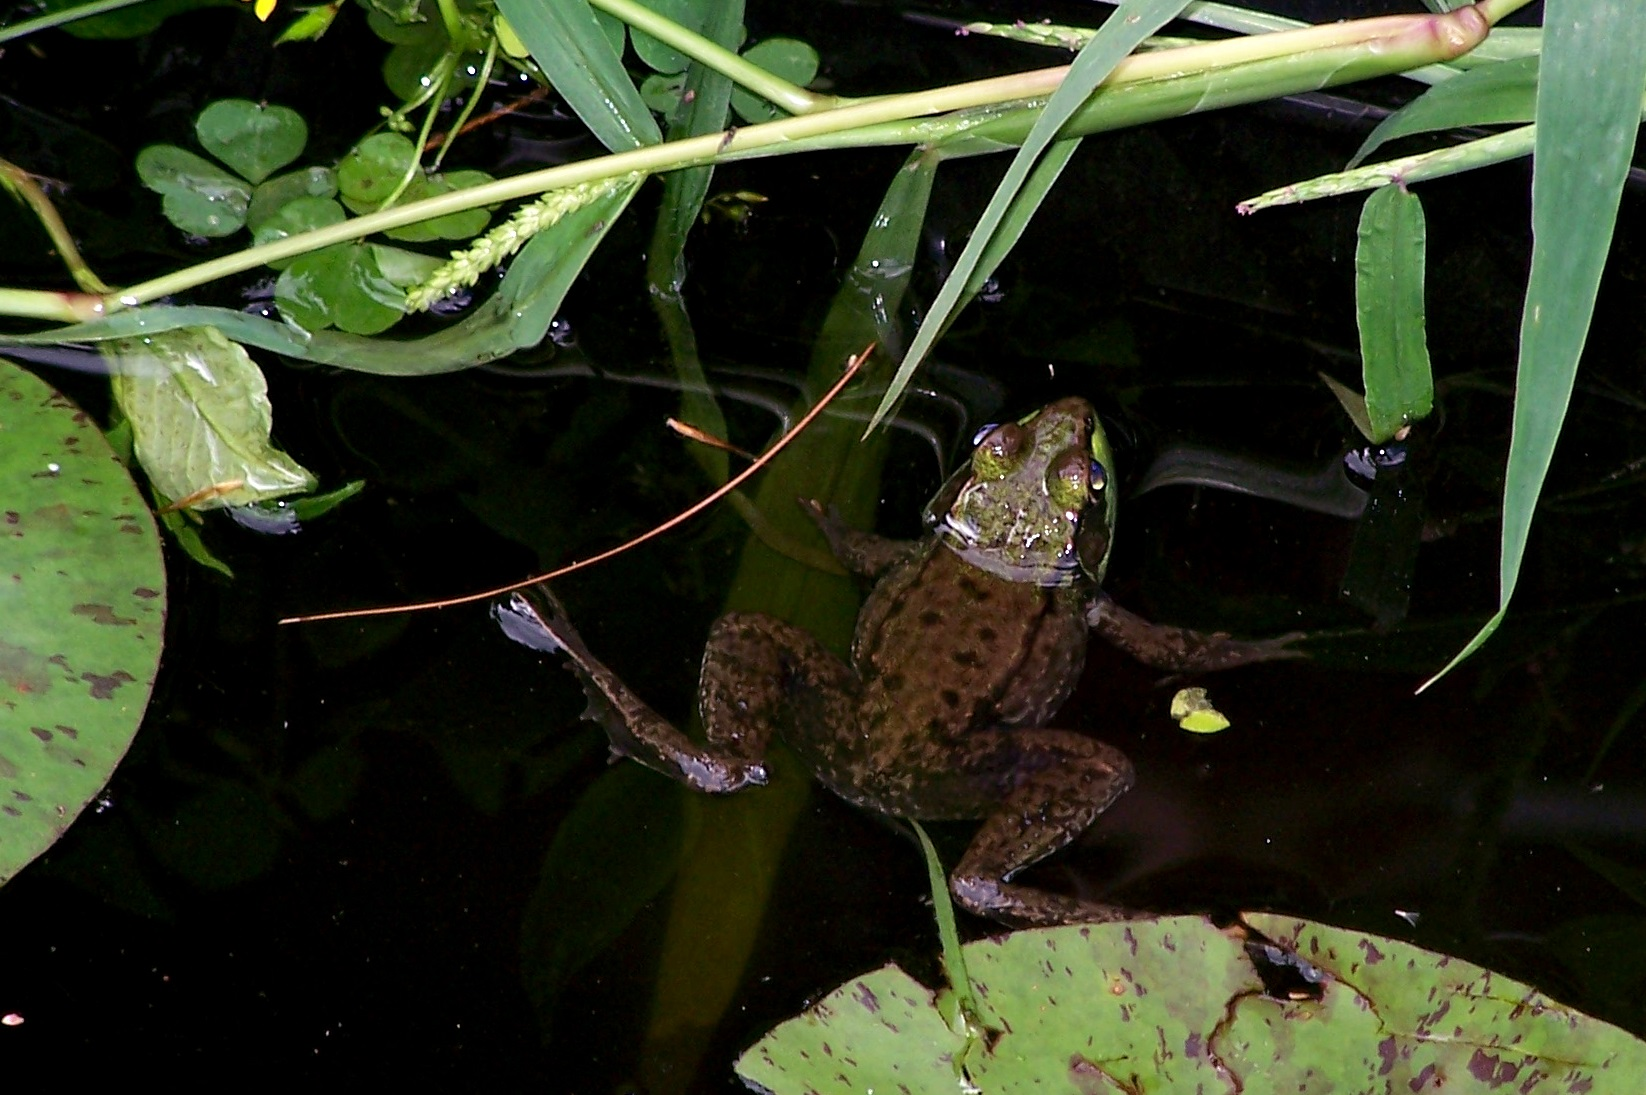 Here our little frog neighbor hangs in the water.